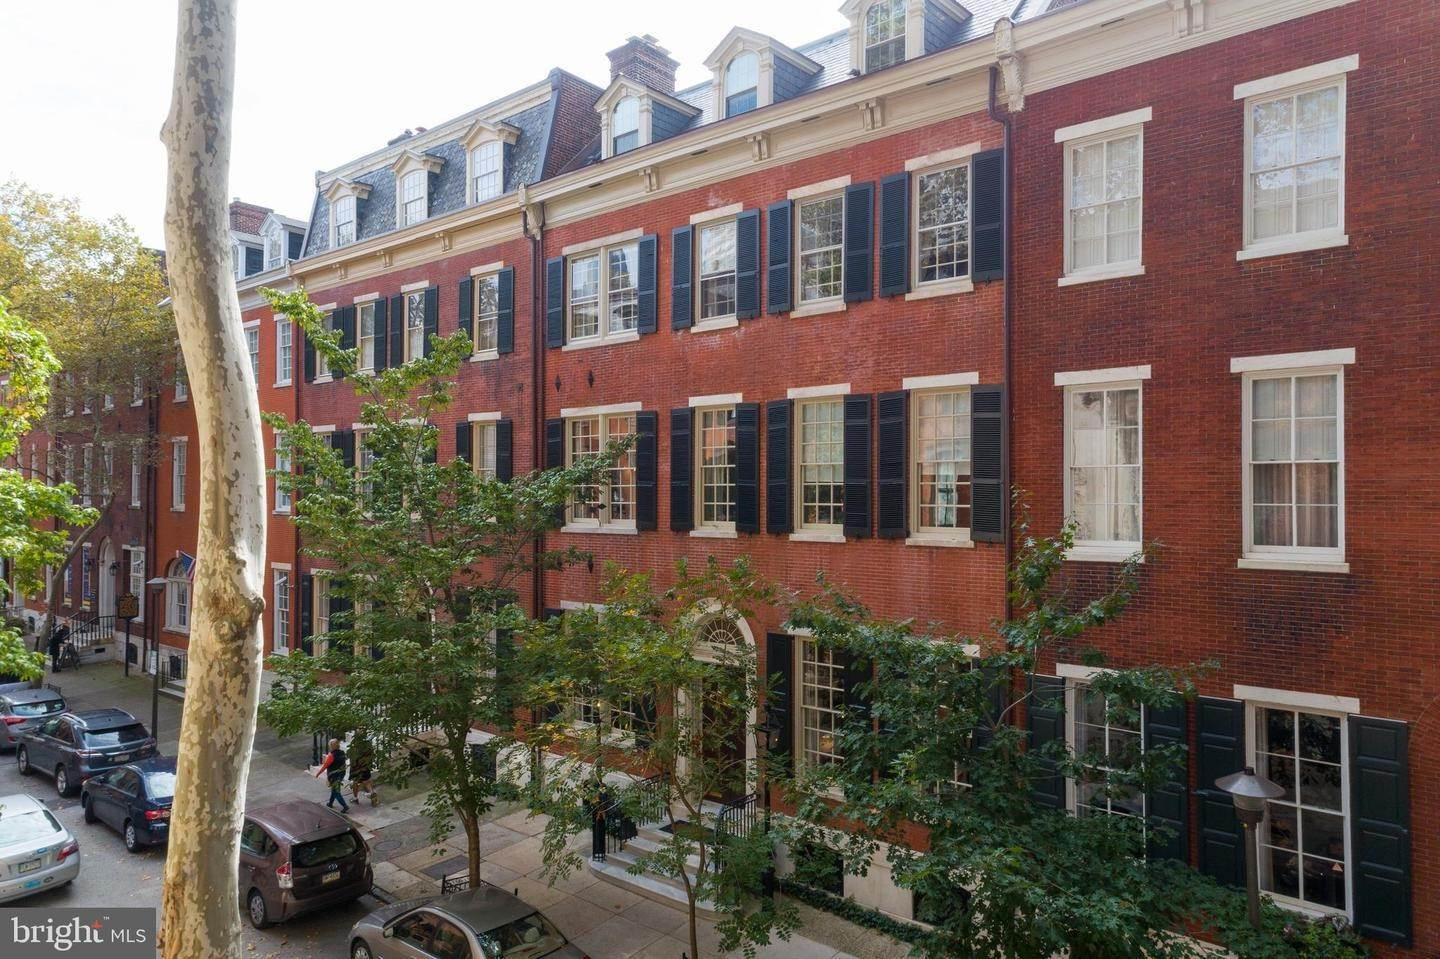 Property for Sale at 2014 DELANCEY Place Philadelphia, Pennsylvania 19103 United States